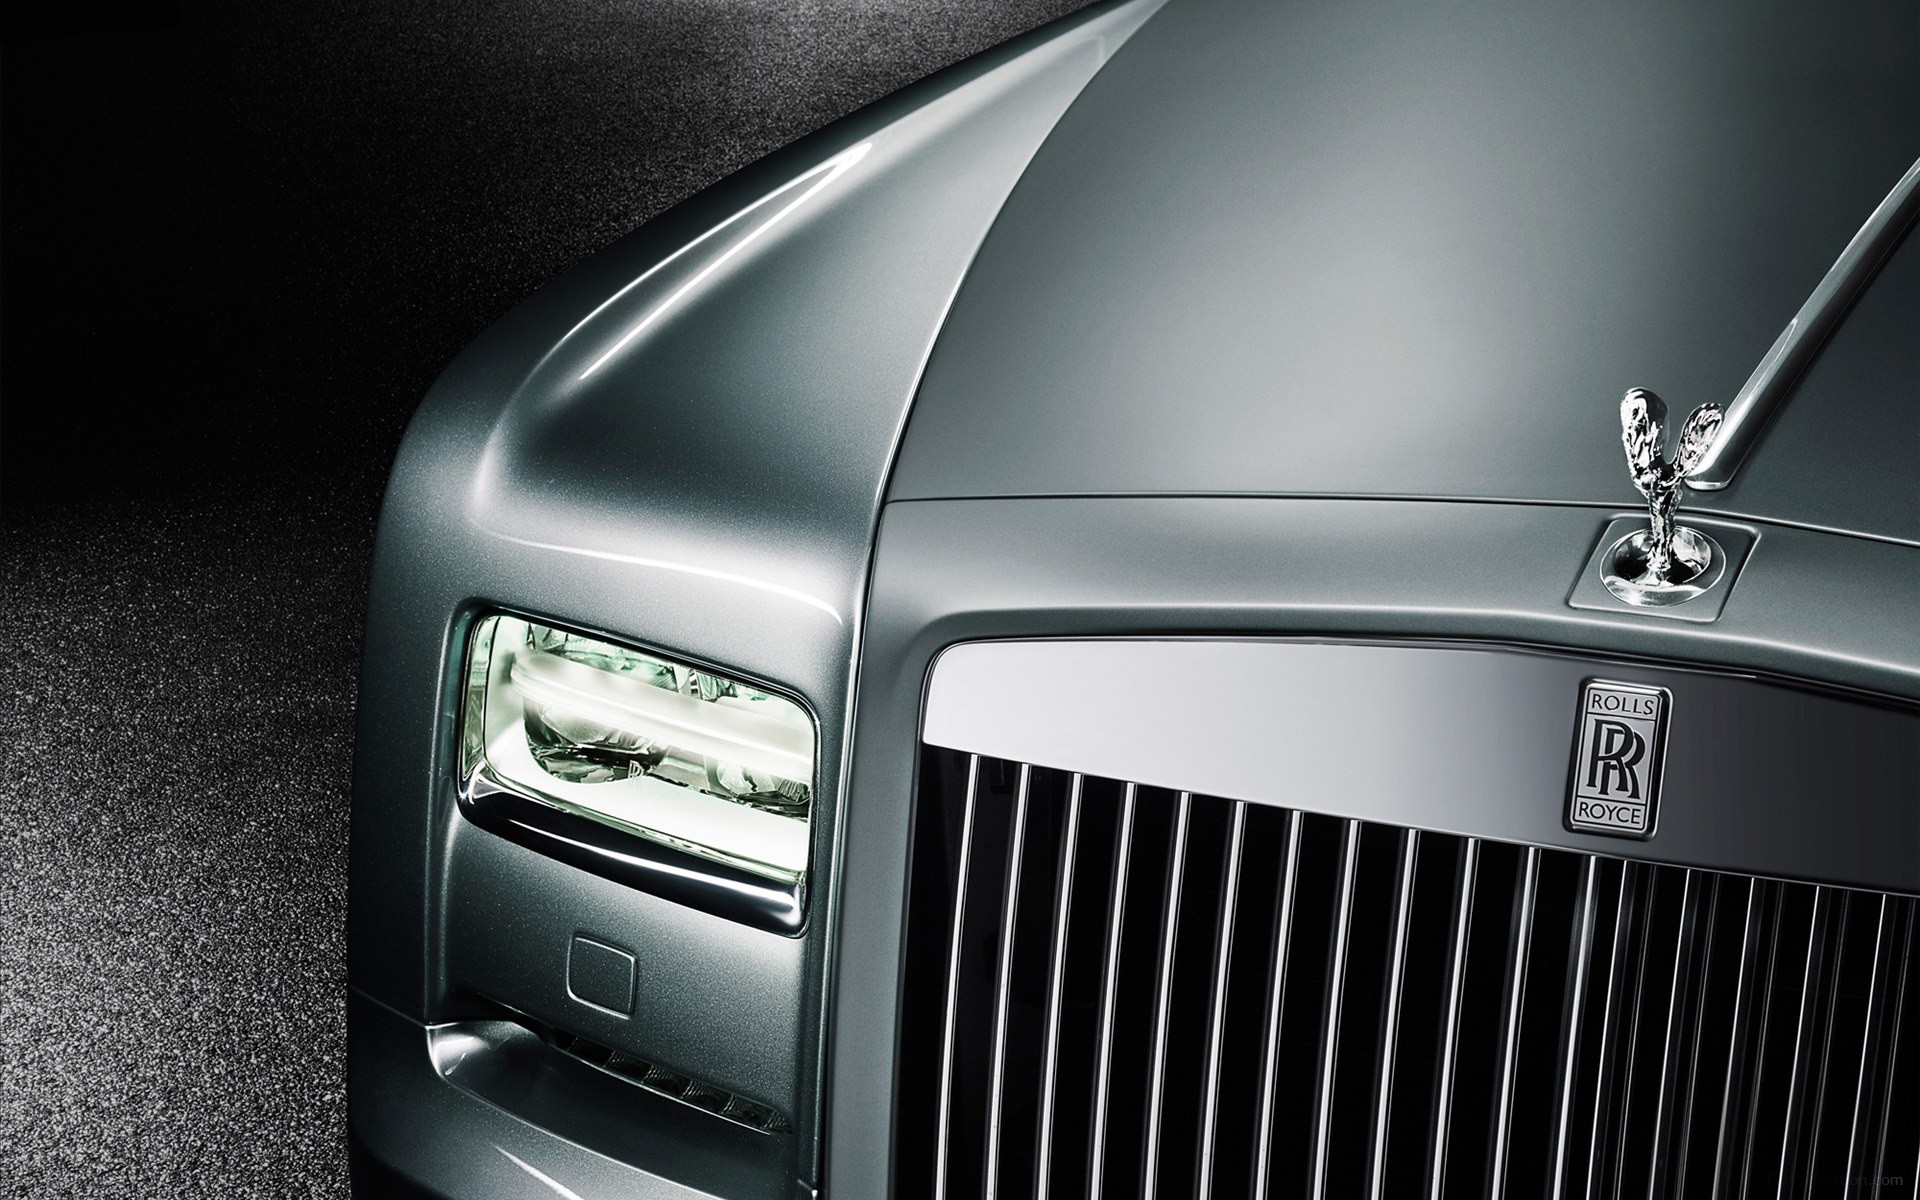 Rolls Royce Phatom Wallpaper Hd Car Wallpapers Id 3013